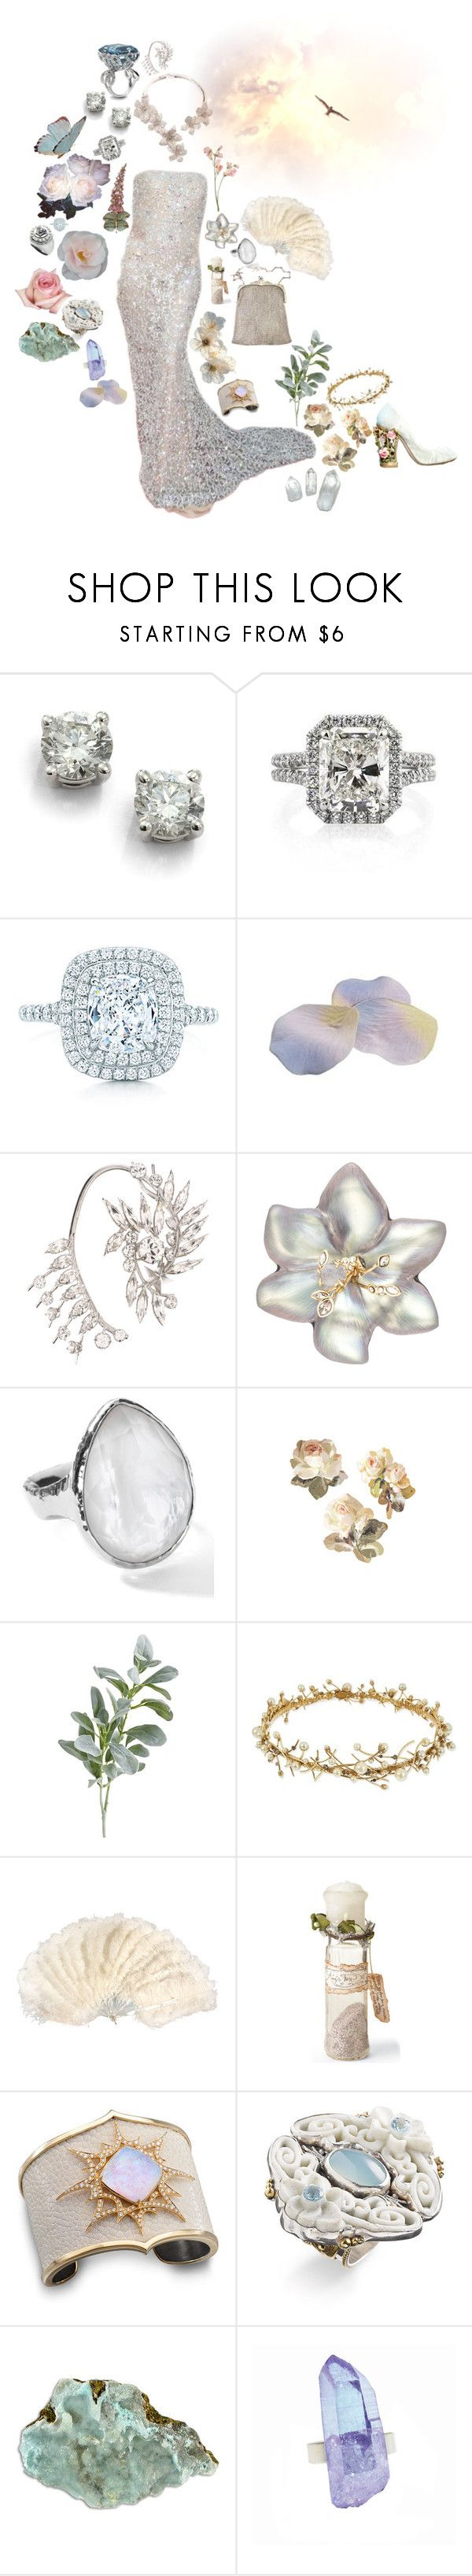 """""""Starlit"""" by ambre-moon ❤ liked on Polyvore featuring Erica Courtney, Saks Fifth Avenue, Tiffany & Co., Givenchy, Giuseppe Zanotti, Naeem Khan, Alexis Bittar, Ippolita, Pier 1 Imports and Erickson Beamon"""